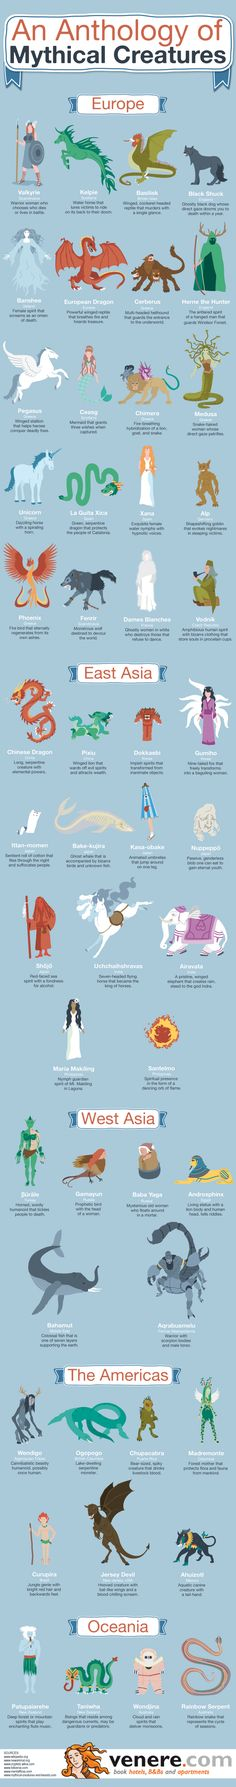 50 Mythical creatures from around the world